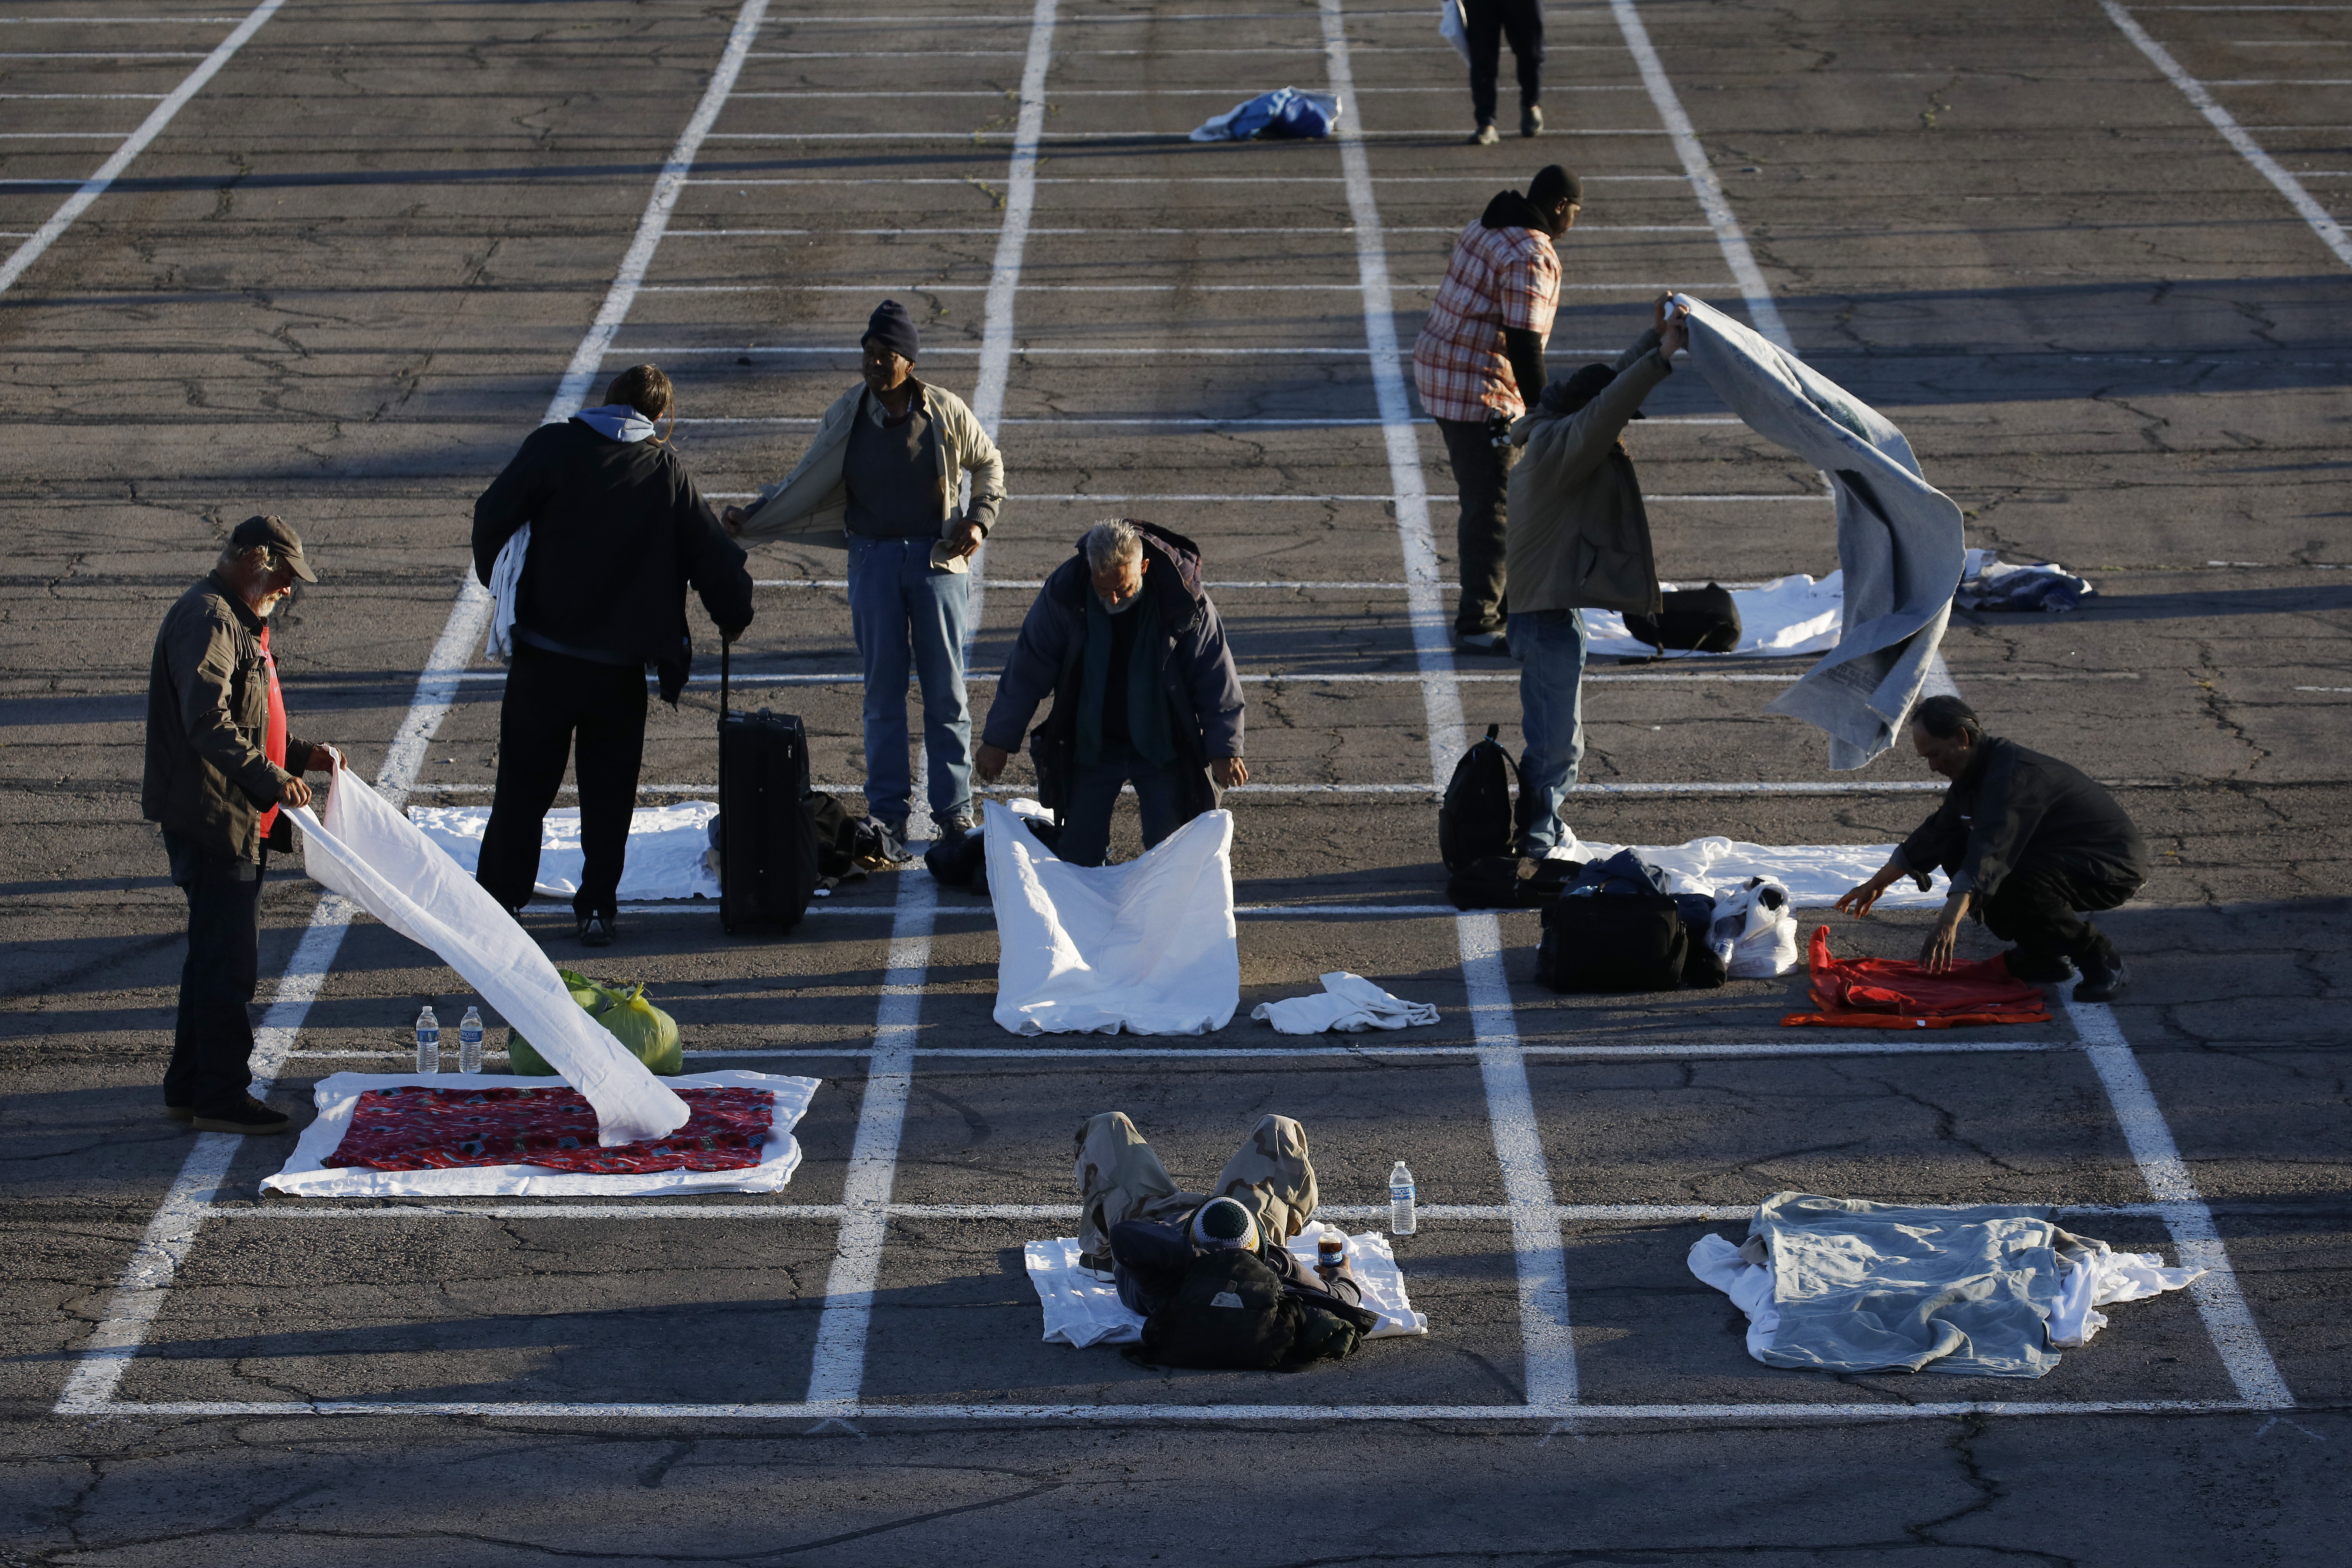 People prepare places to sleep in area marked by painted boxes on the ground of a parking lot at a makeshift camp for the homeless on March 30, 2020, in Las Vegas.